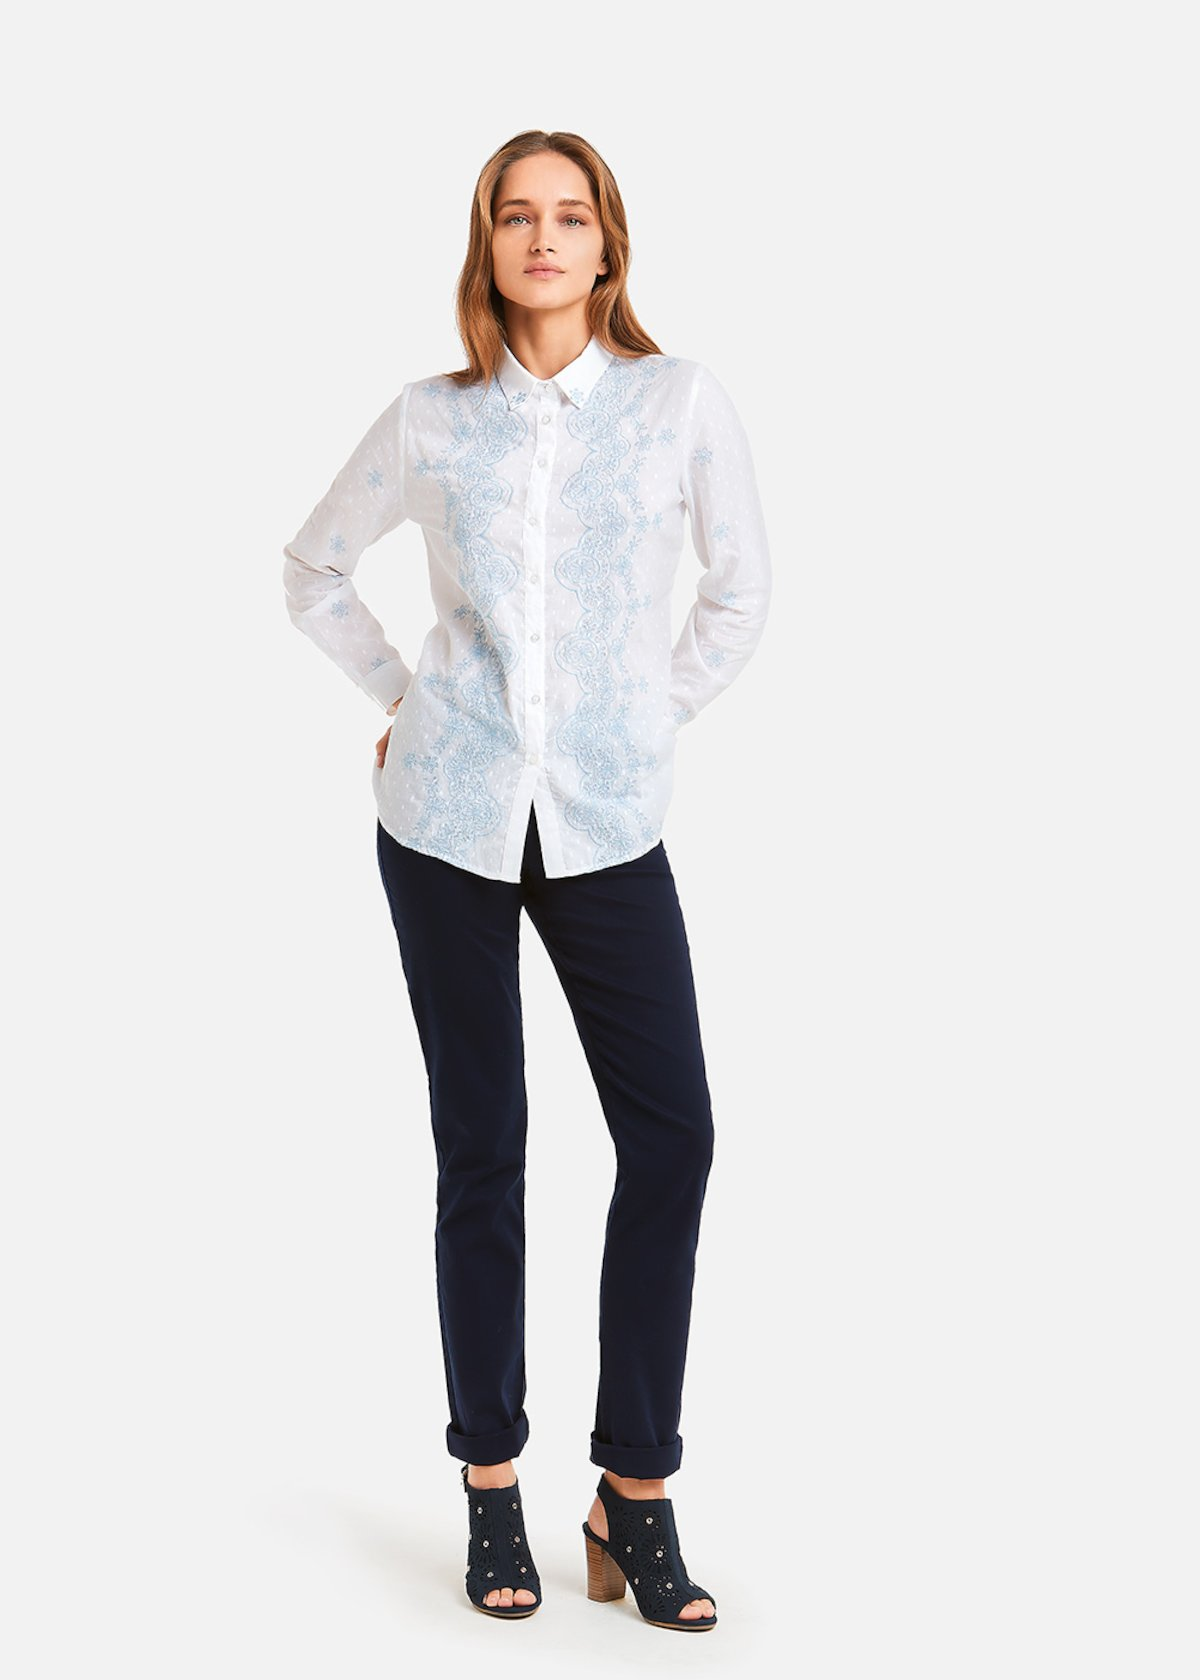 Chery shirt with morning embroidery - White / Morning Pois